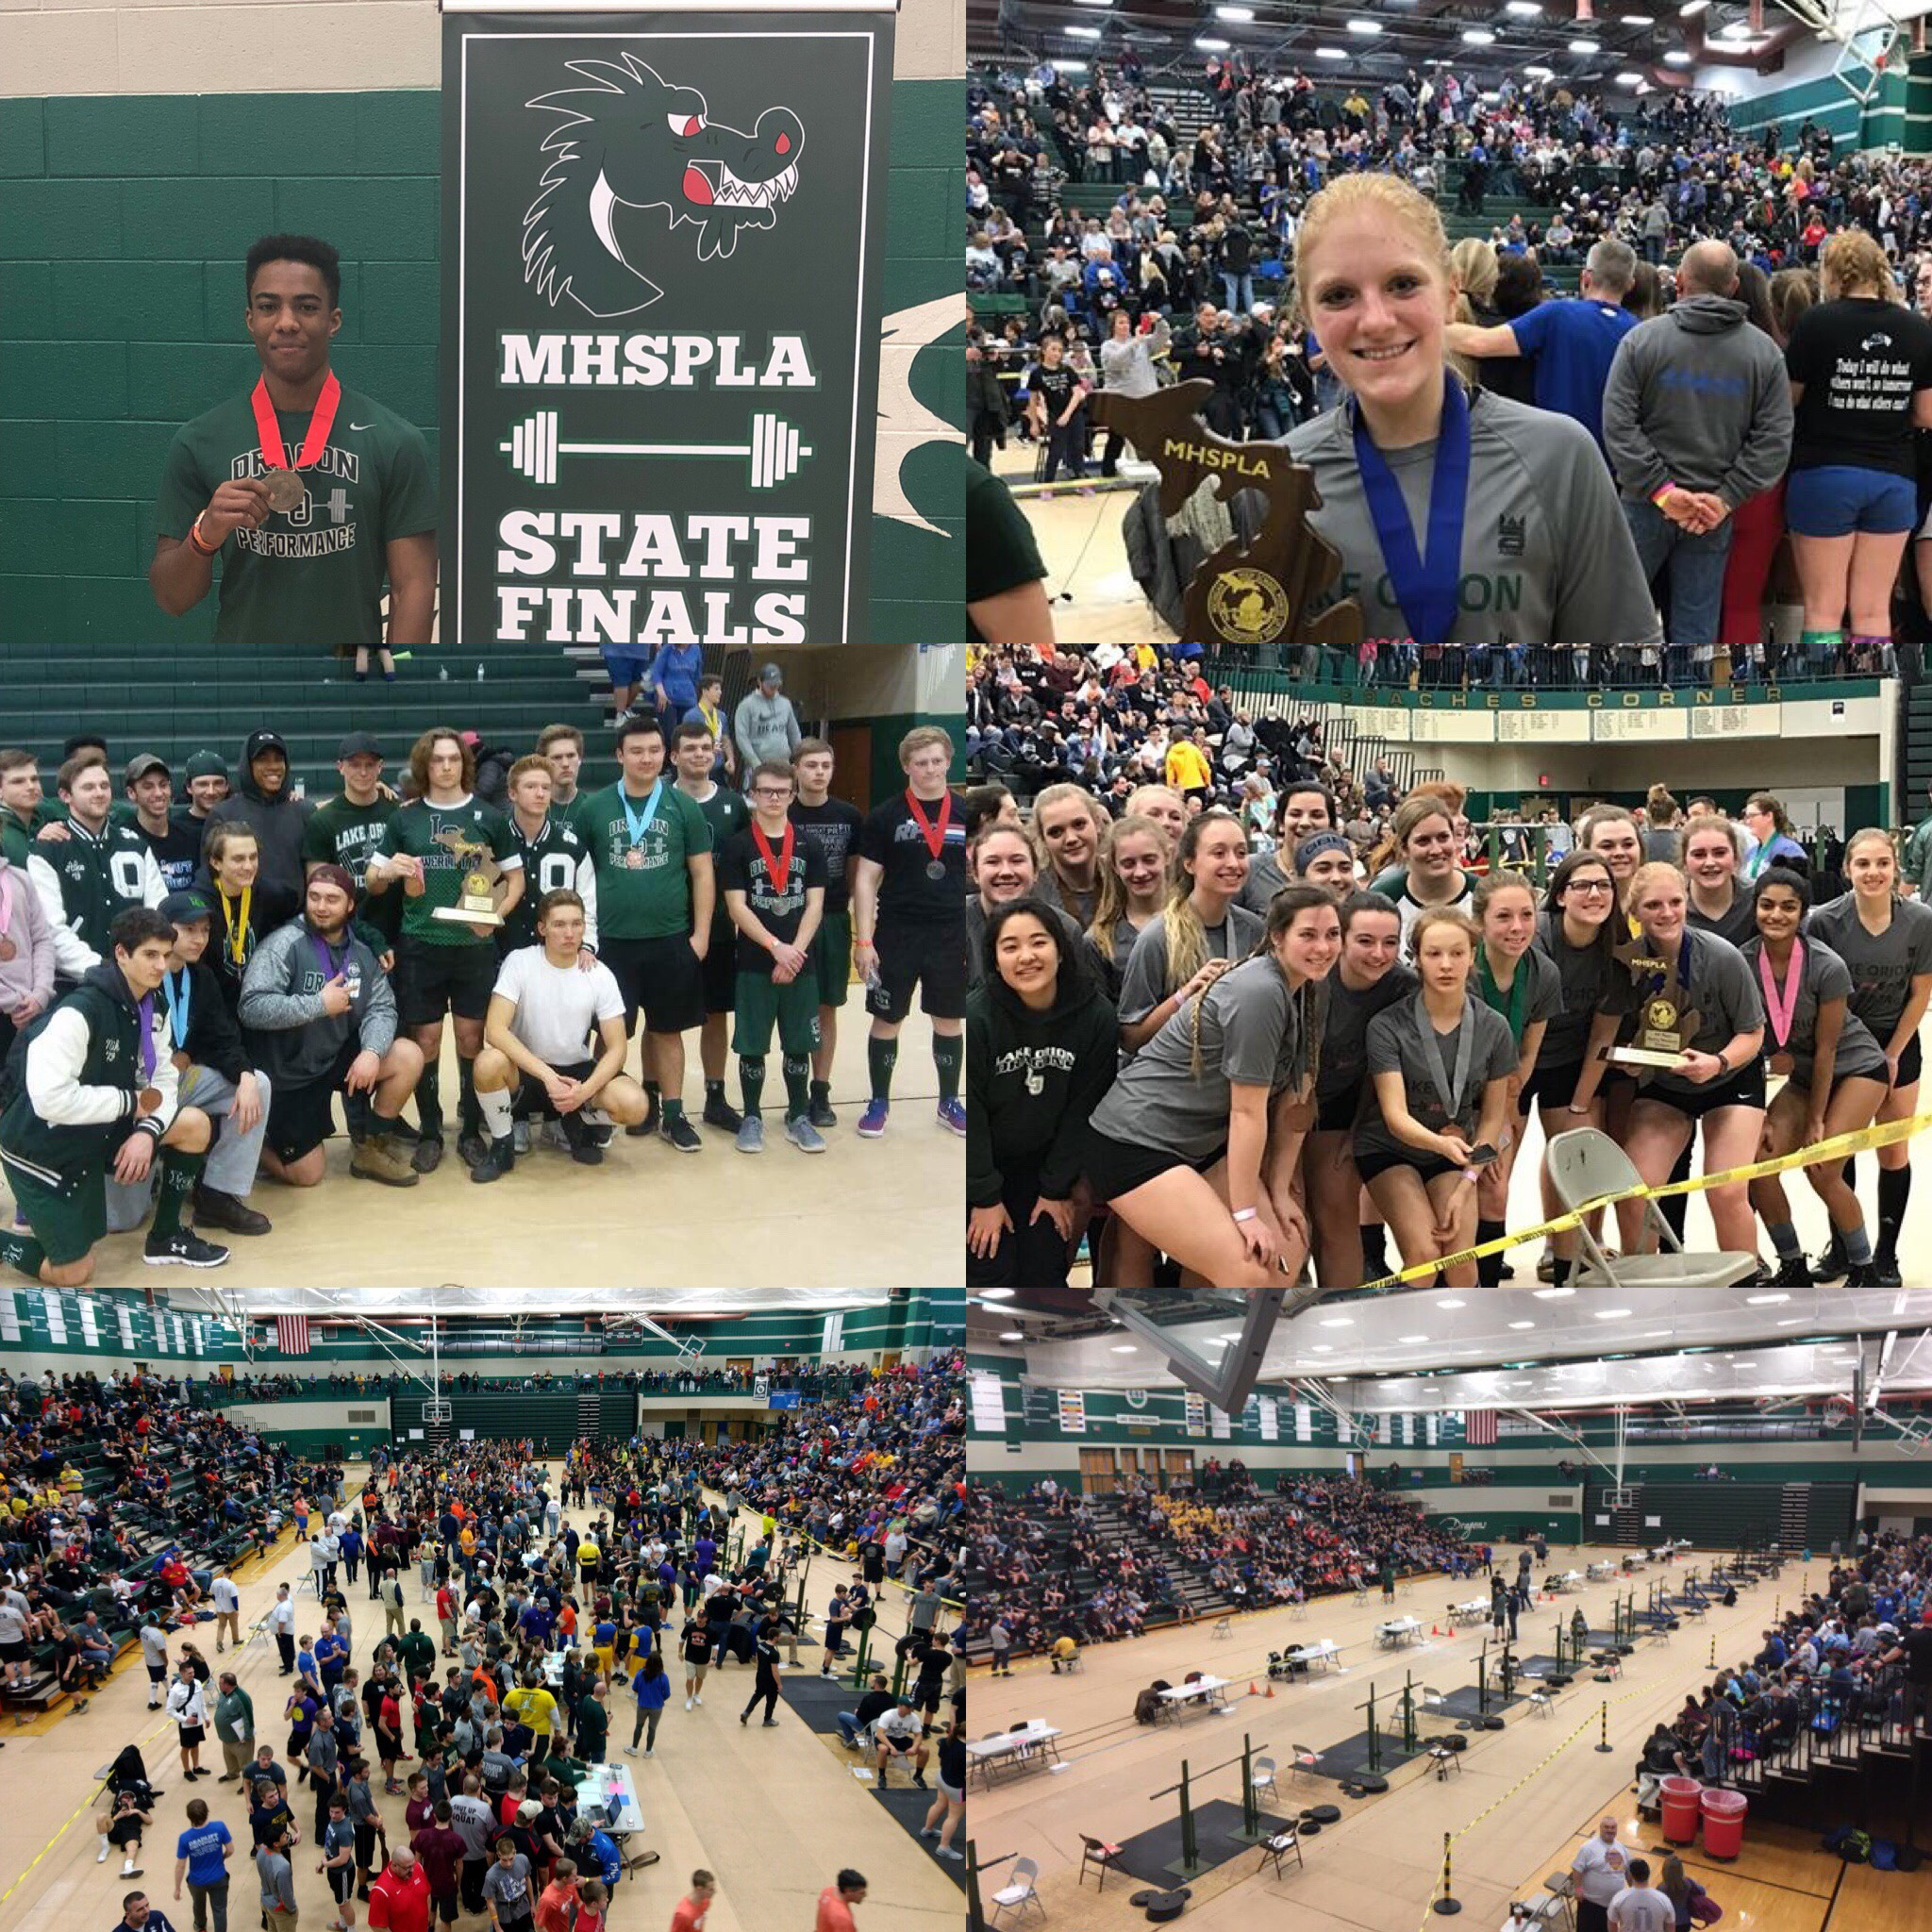 Coed Varsity Powerlifting finishes 3rd place at MHSPLA State Championships